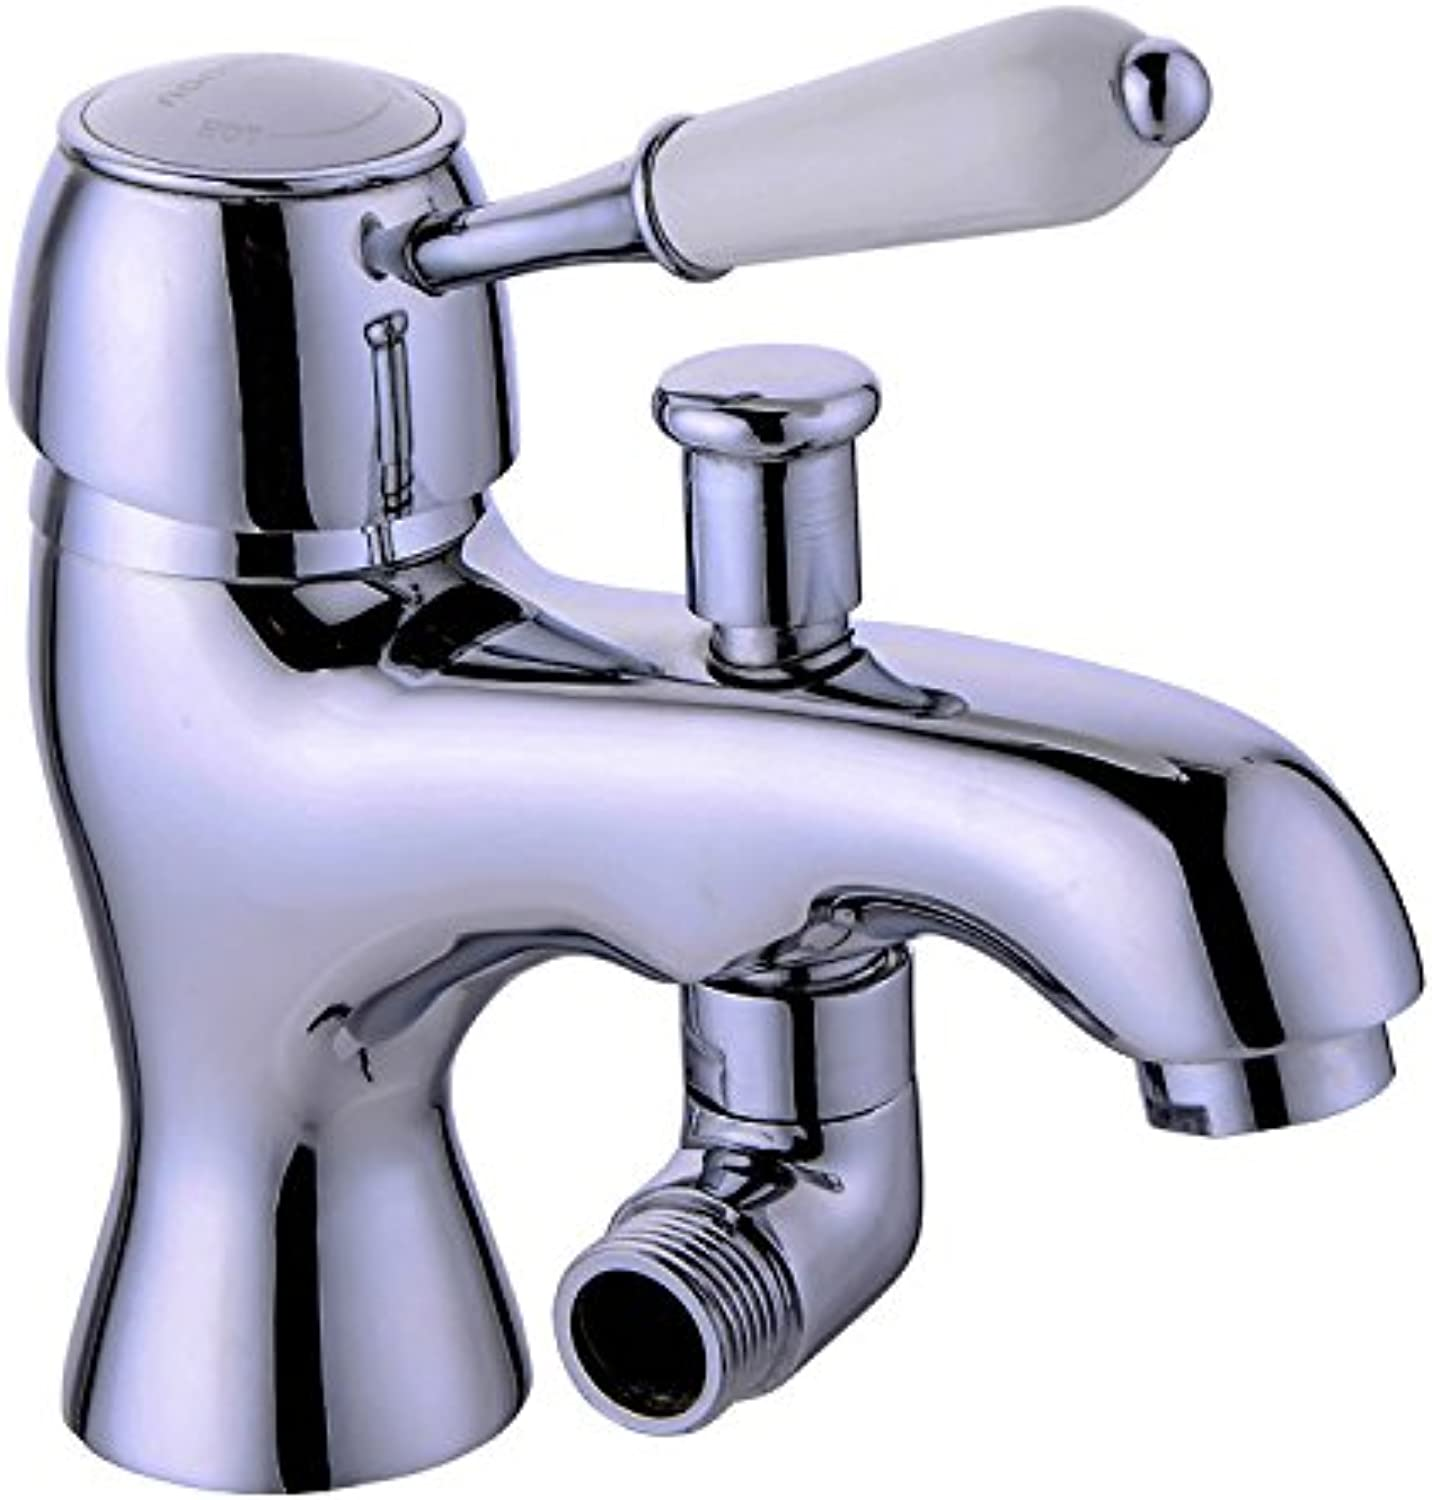 Hlluya Professional Sink Mixer Tap Kitchen Faucet With elbow cold water faucet